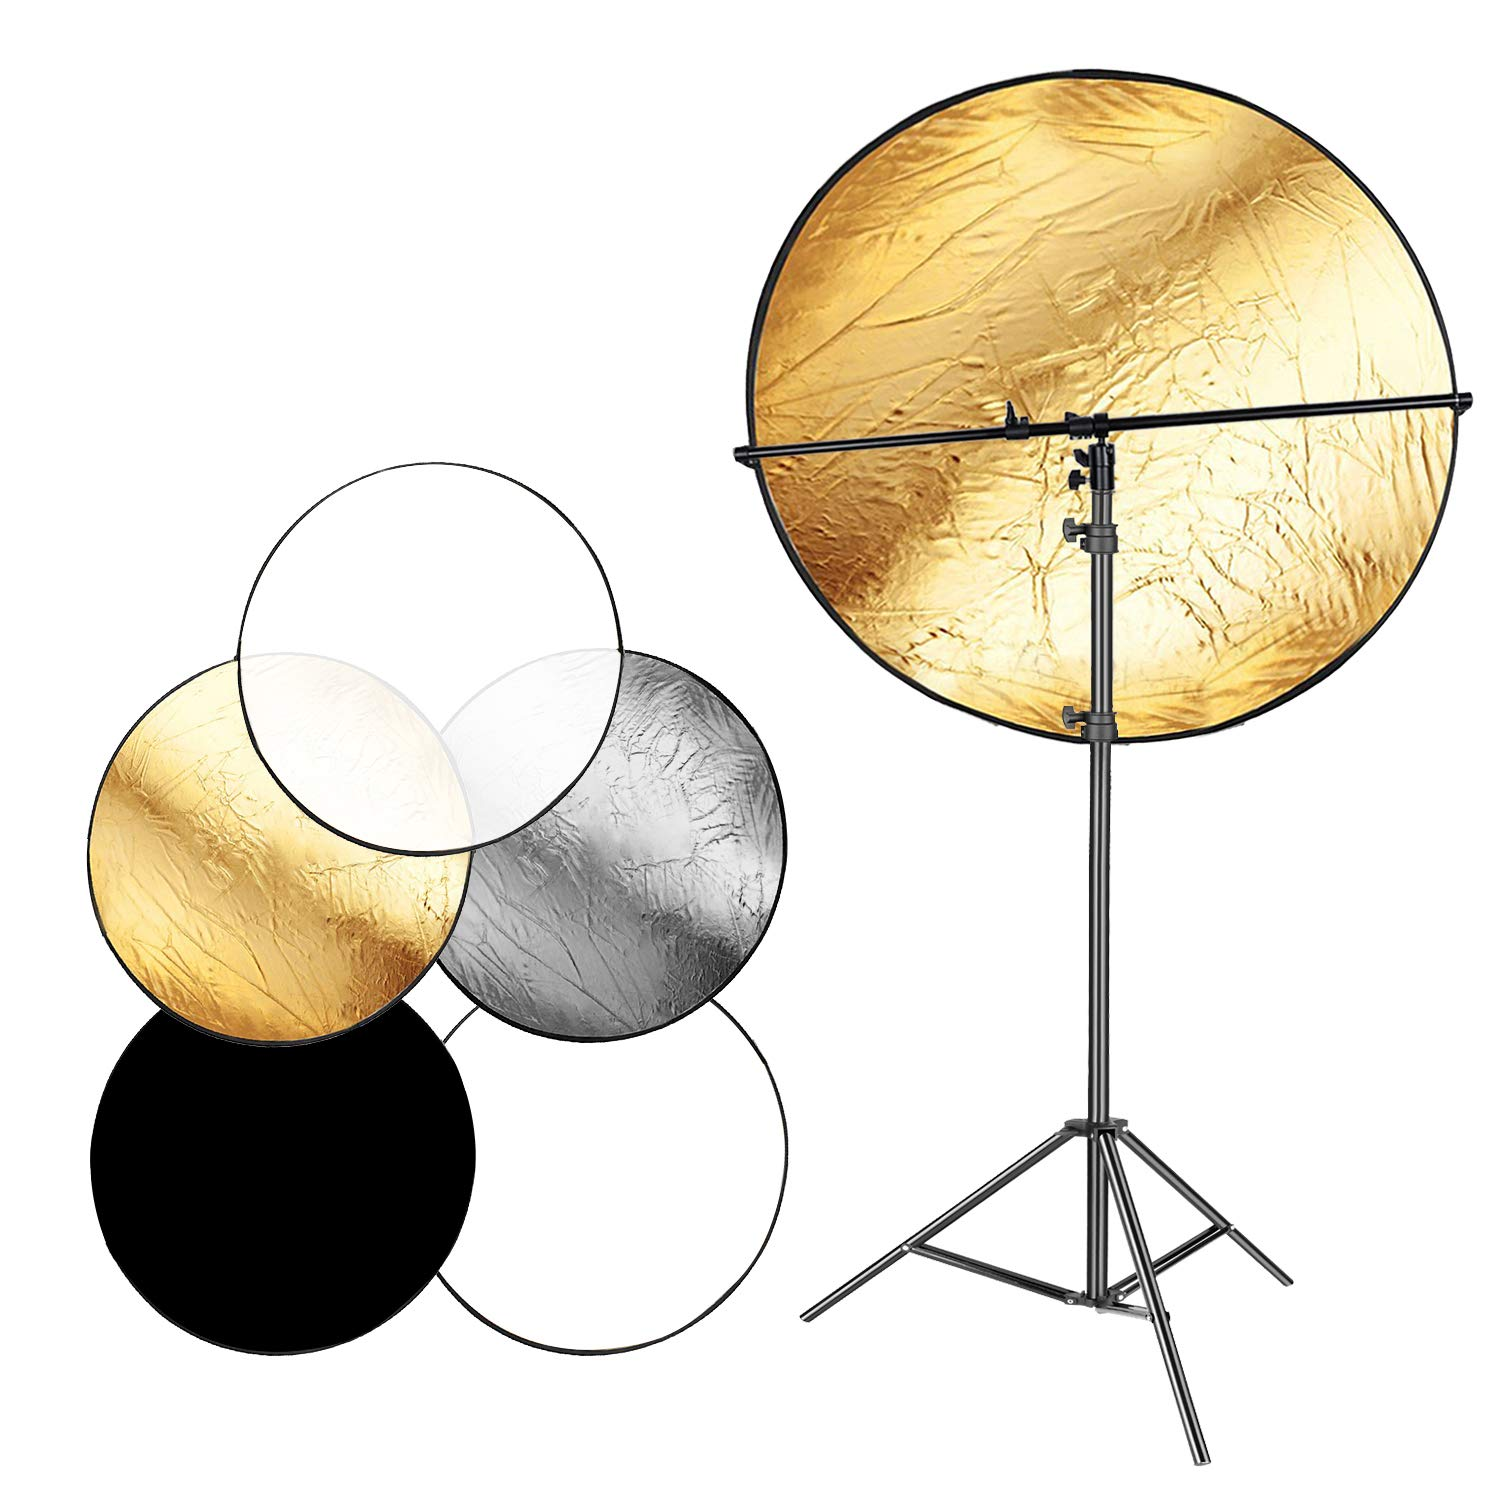 Neewer Photo Studio 43 inches 5-in-1 Collapsible Multi-Disc Lighting Reflector Diffuser Kit Includes 6.5 Feet Metal Light Stand and Telescopic Reflector Support Arm for Portrait Video Photography